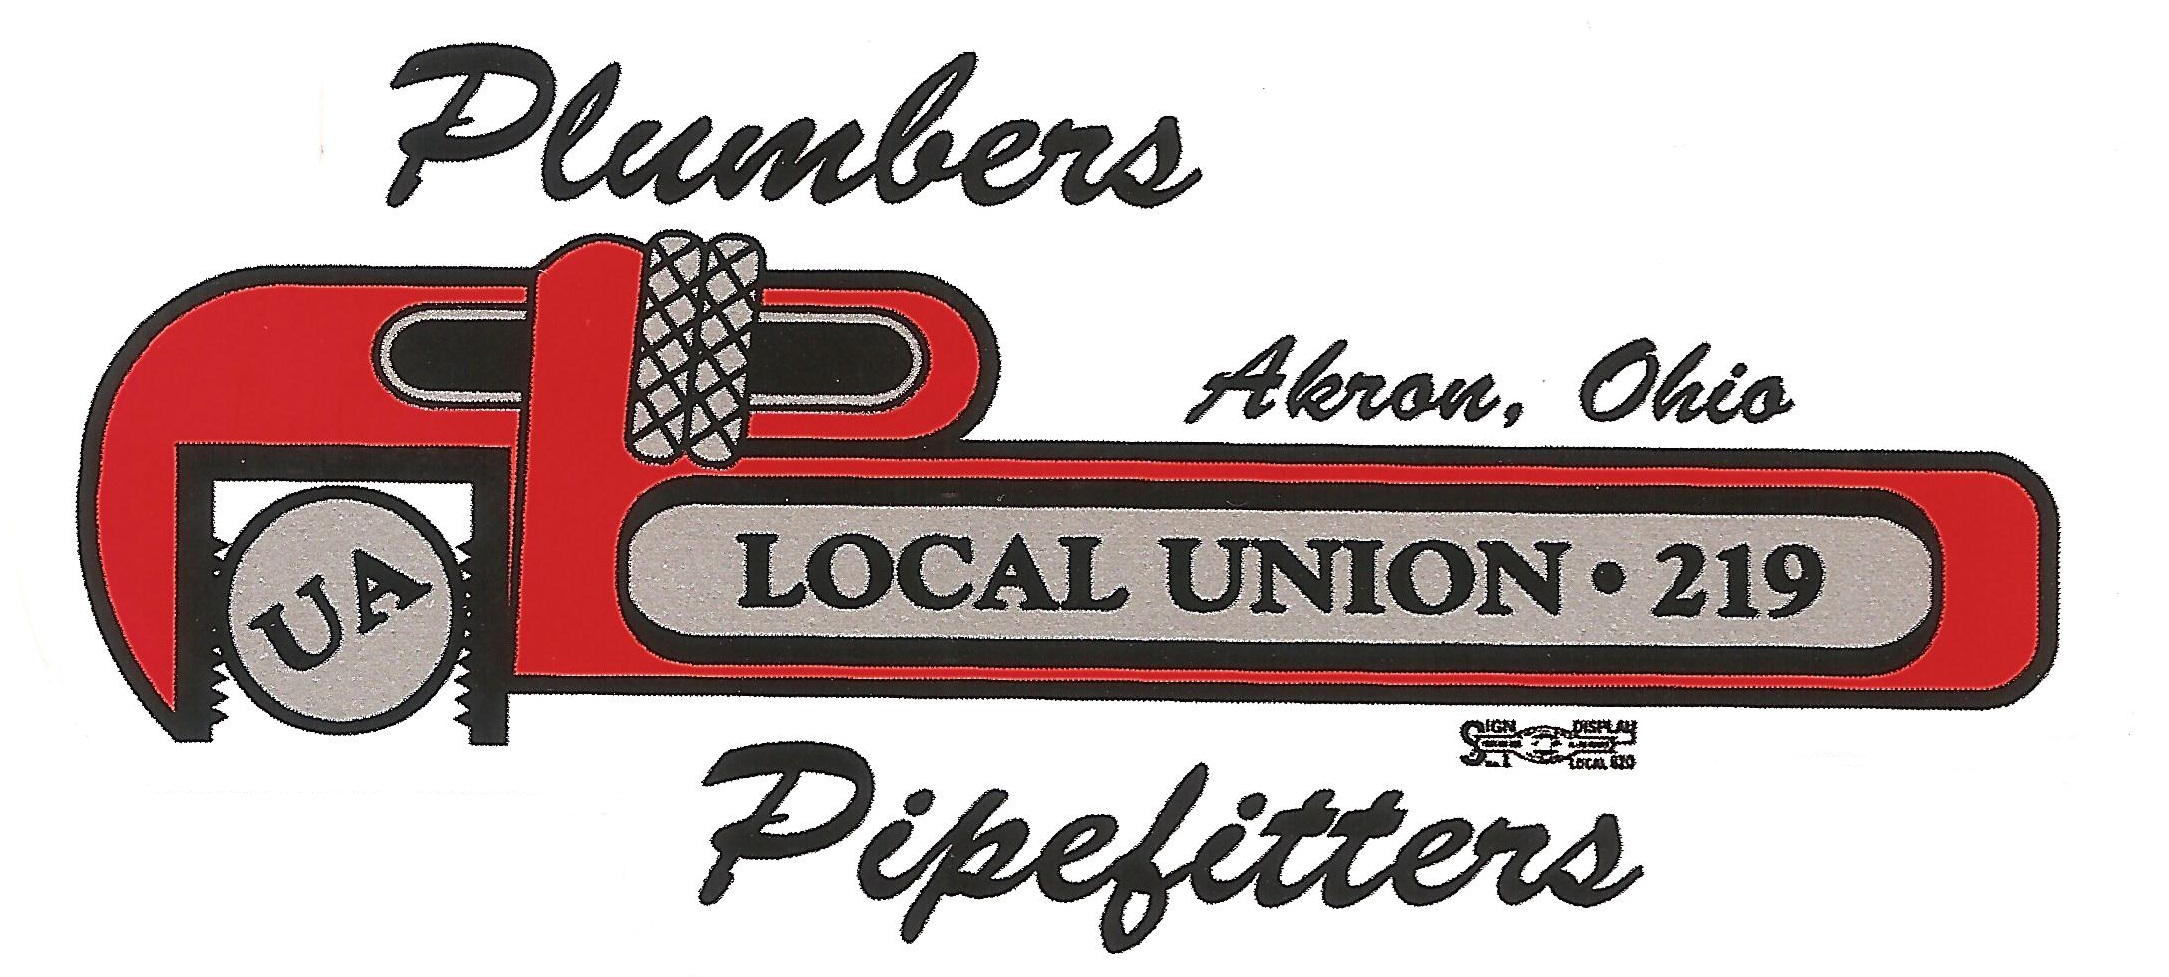 Plumbers and Pipefitters Local 219